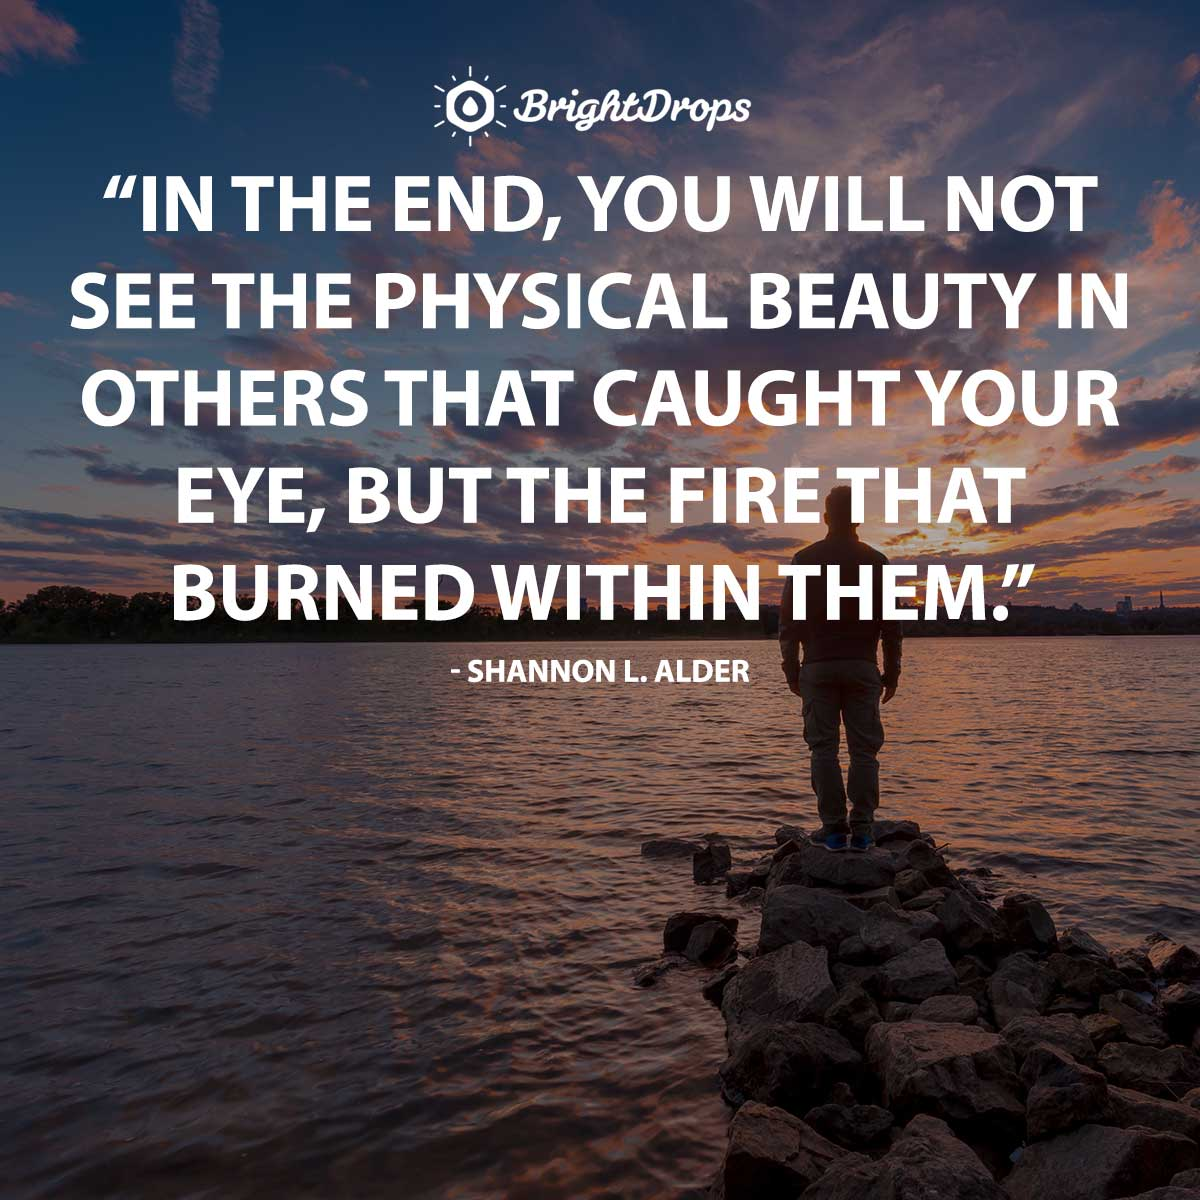 In the end, you will not see the physical beauty in others that caught your eye, but the fire that burned within them. - Shannon L. Alder